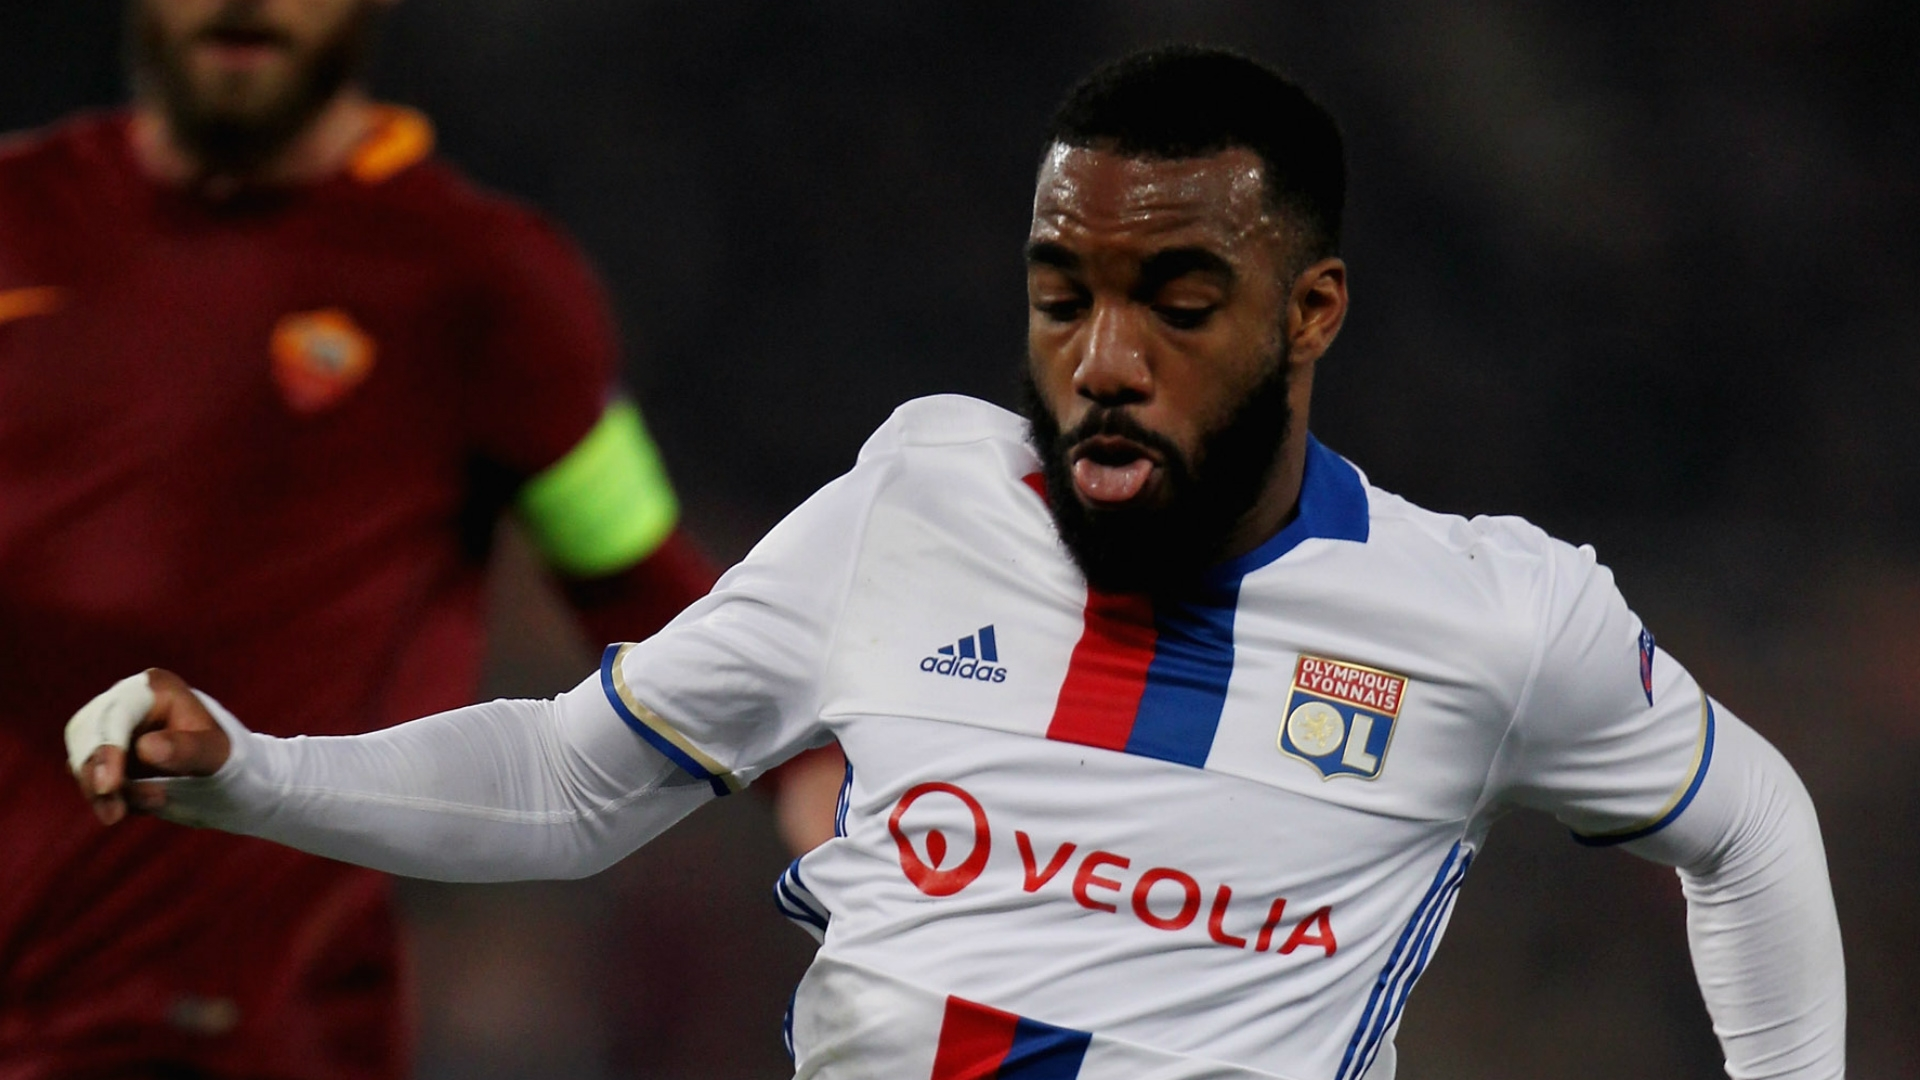 At least in theory, Arsenal would not be desperate to buy Lacazette at any price. Then again, neither is Lyon anxious to sell the striker below market value.